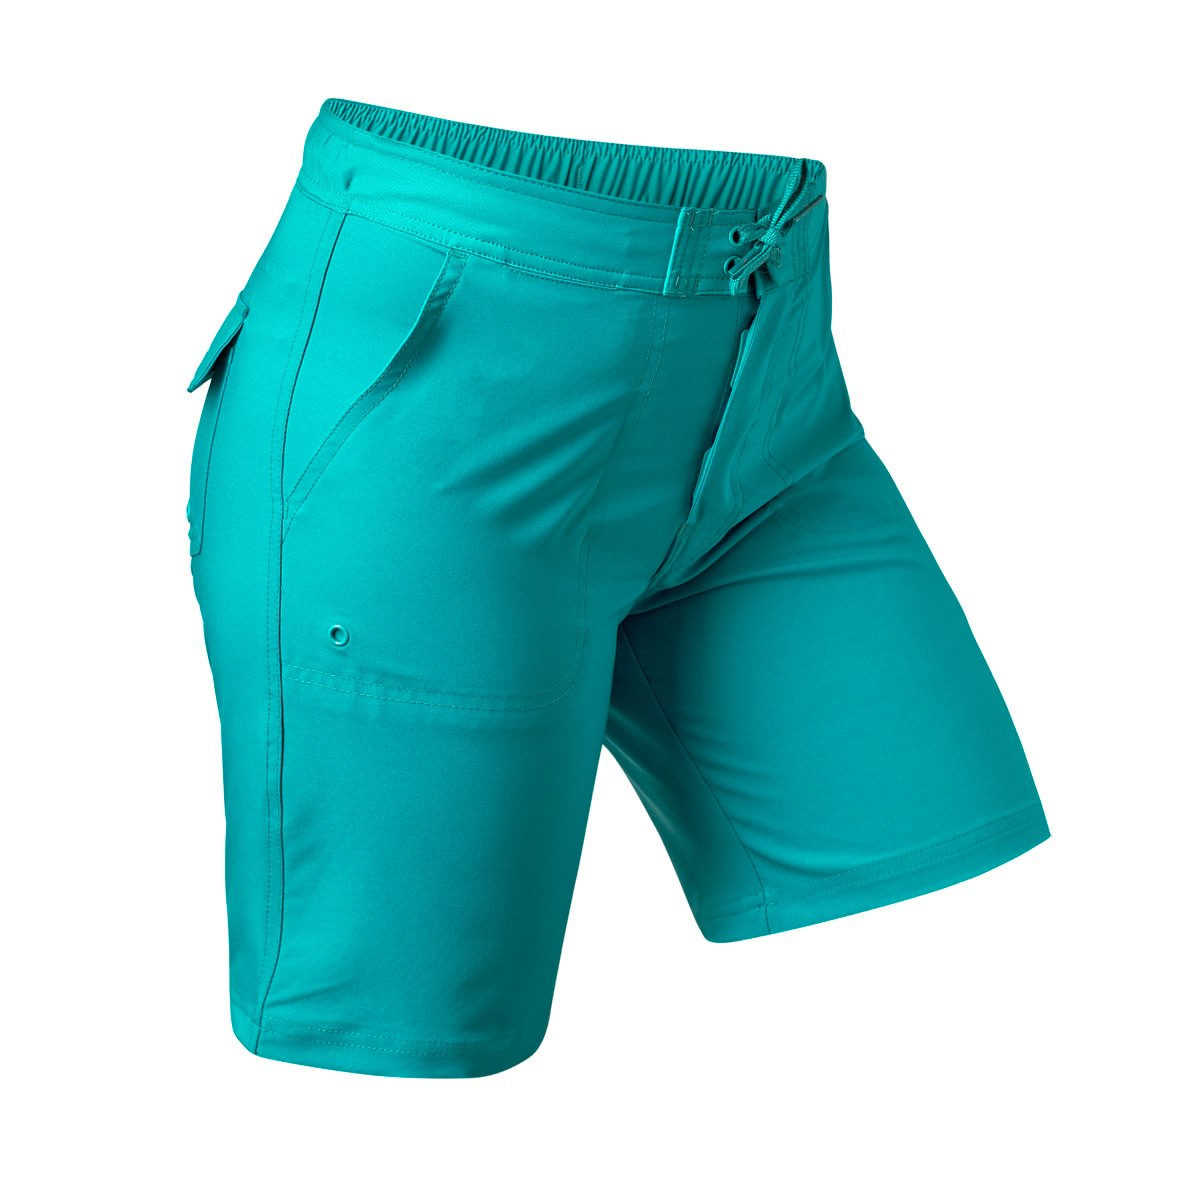 UV SKINZ UPF50+ Womens Board Shorts-Teal-XL